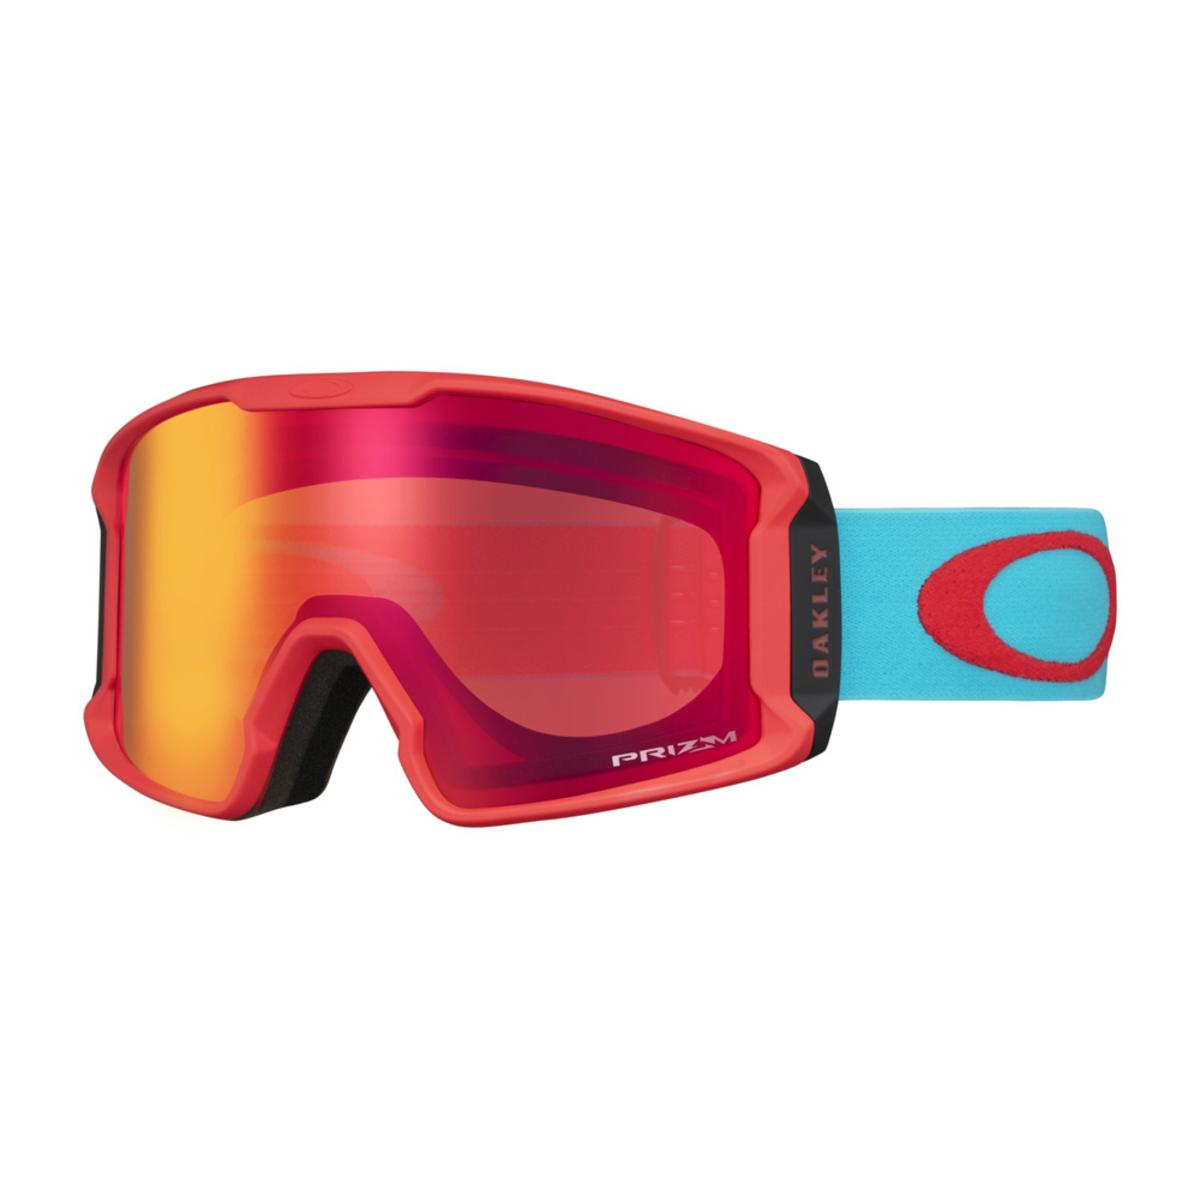 a5ae2d4ae8d Oakley Line Miner XM Caribbean Sea Red Snow Goggle w Prizm Snow Torch  Iridium - The Warming Store